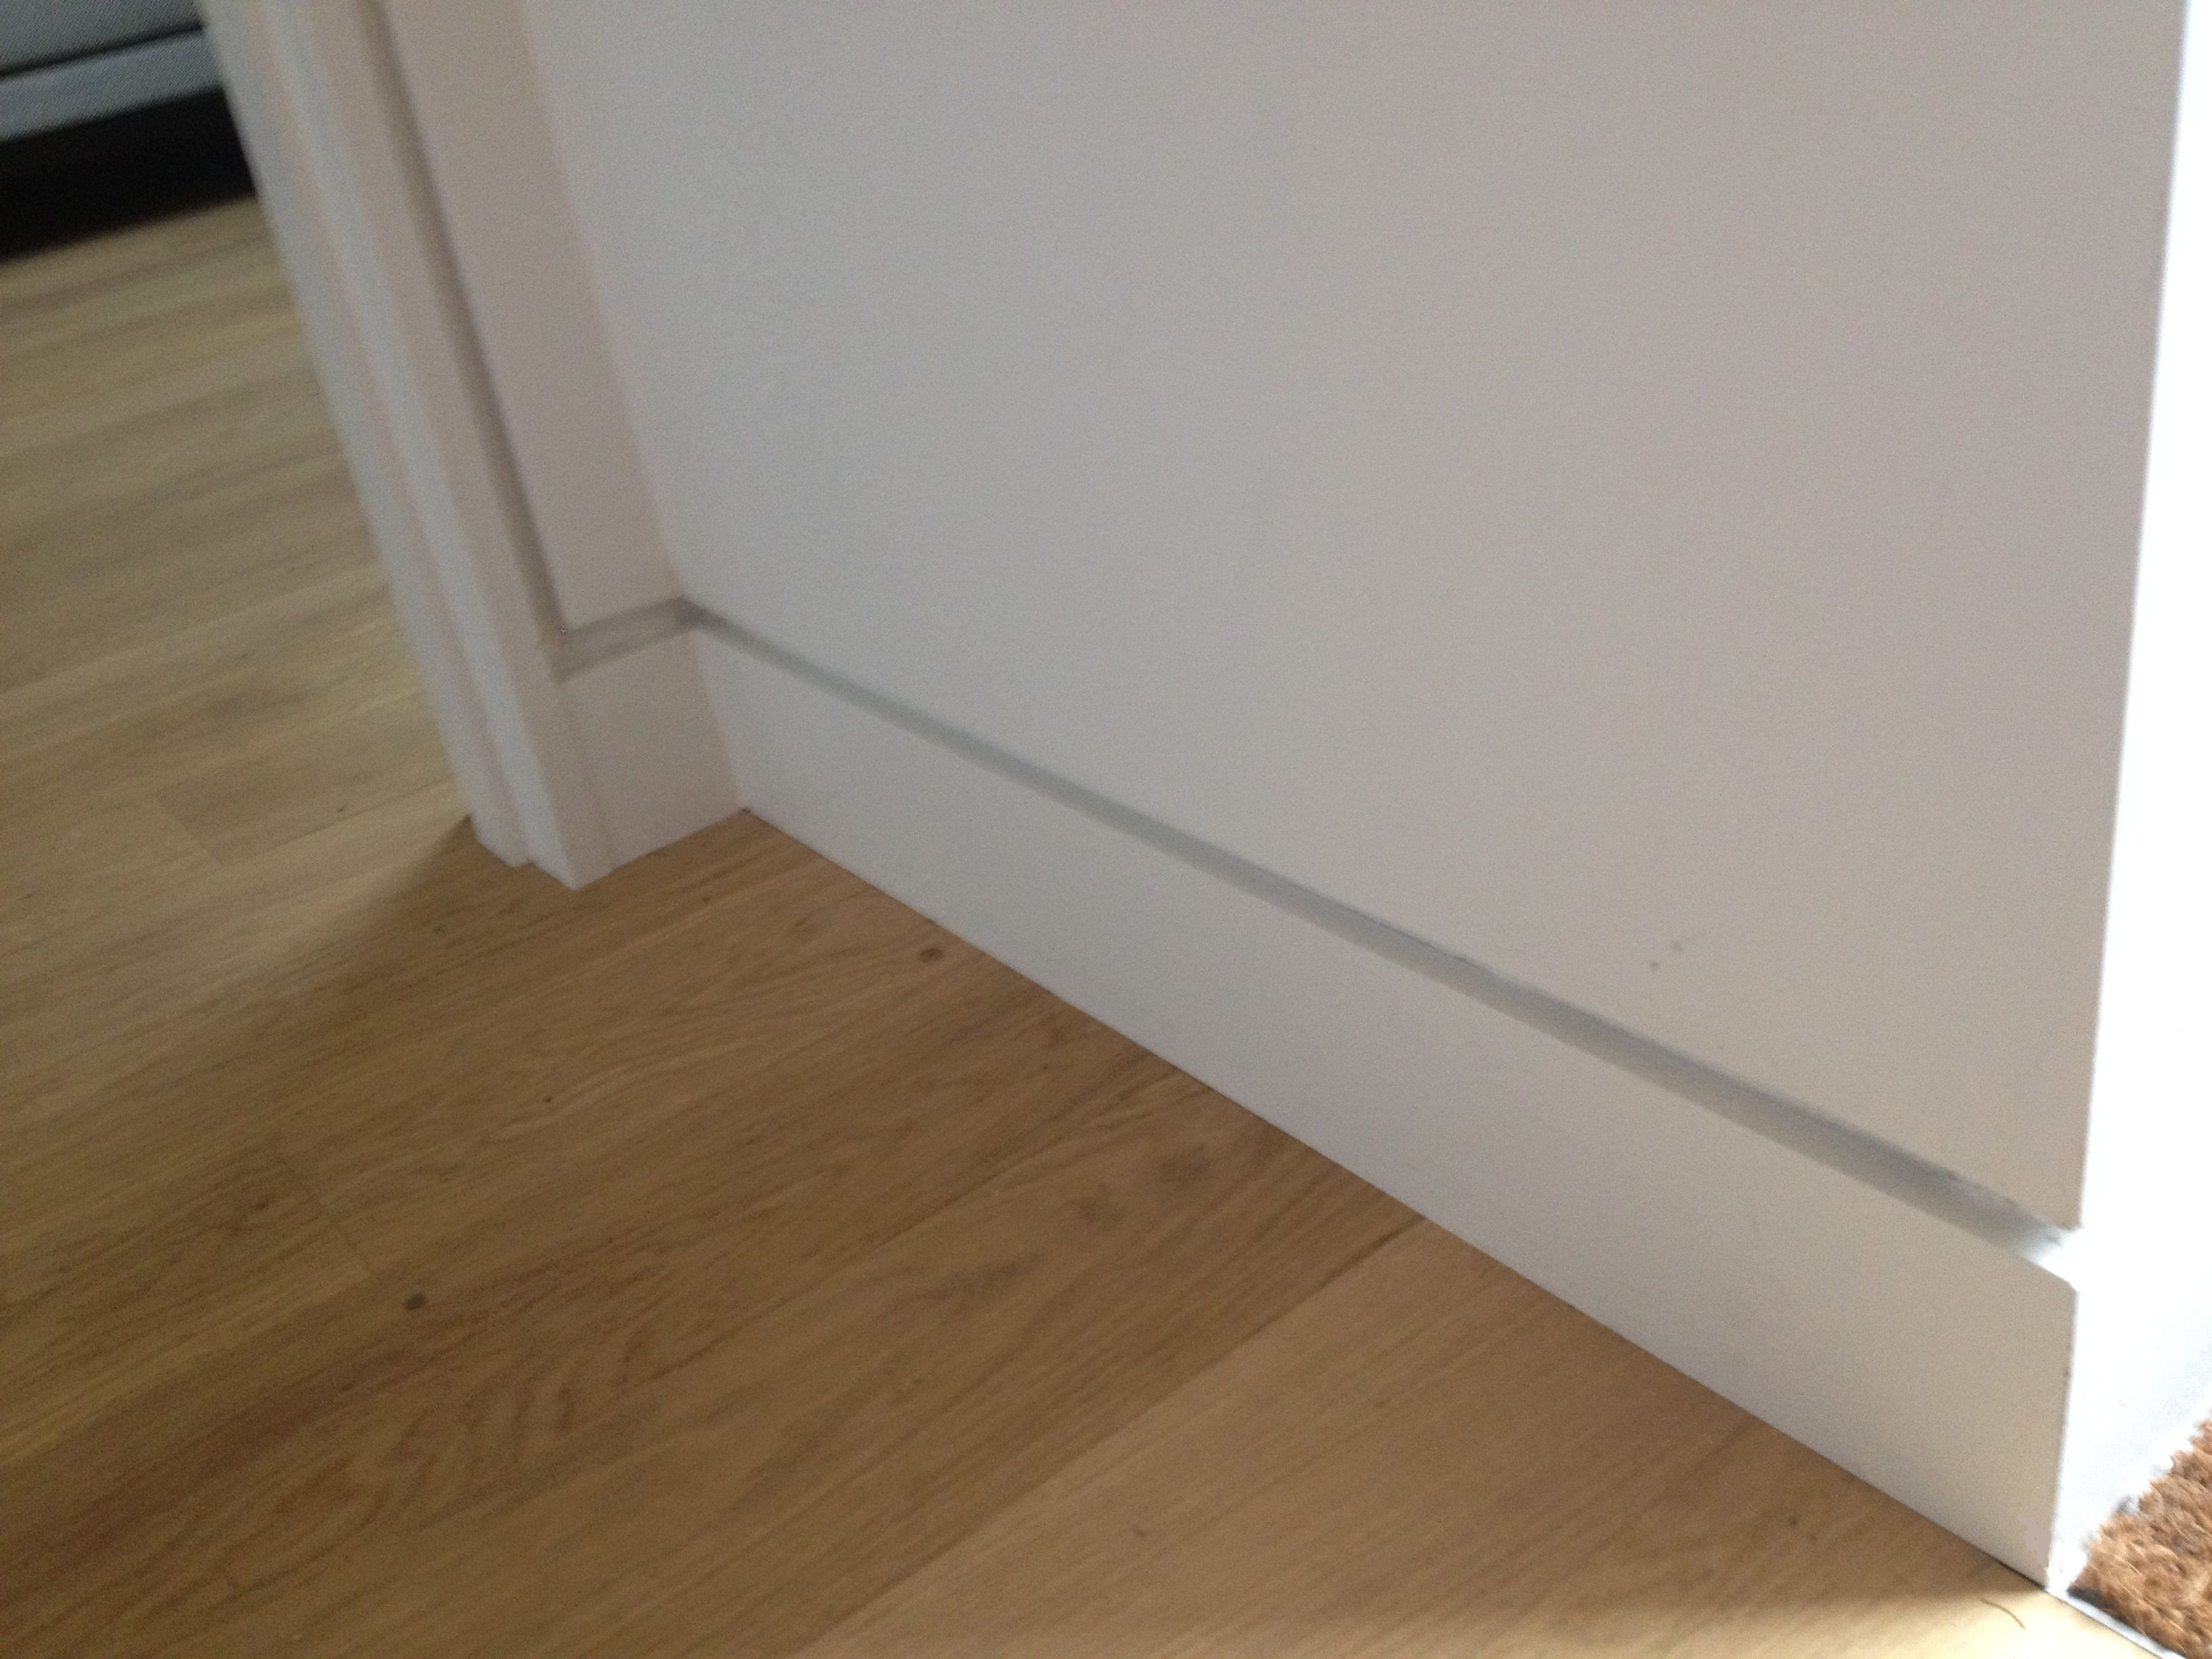 Shadow gap modern skirting board doesn 39 t have to go Modern floor molding